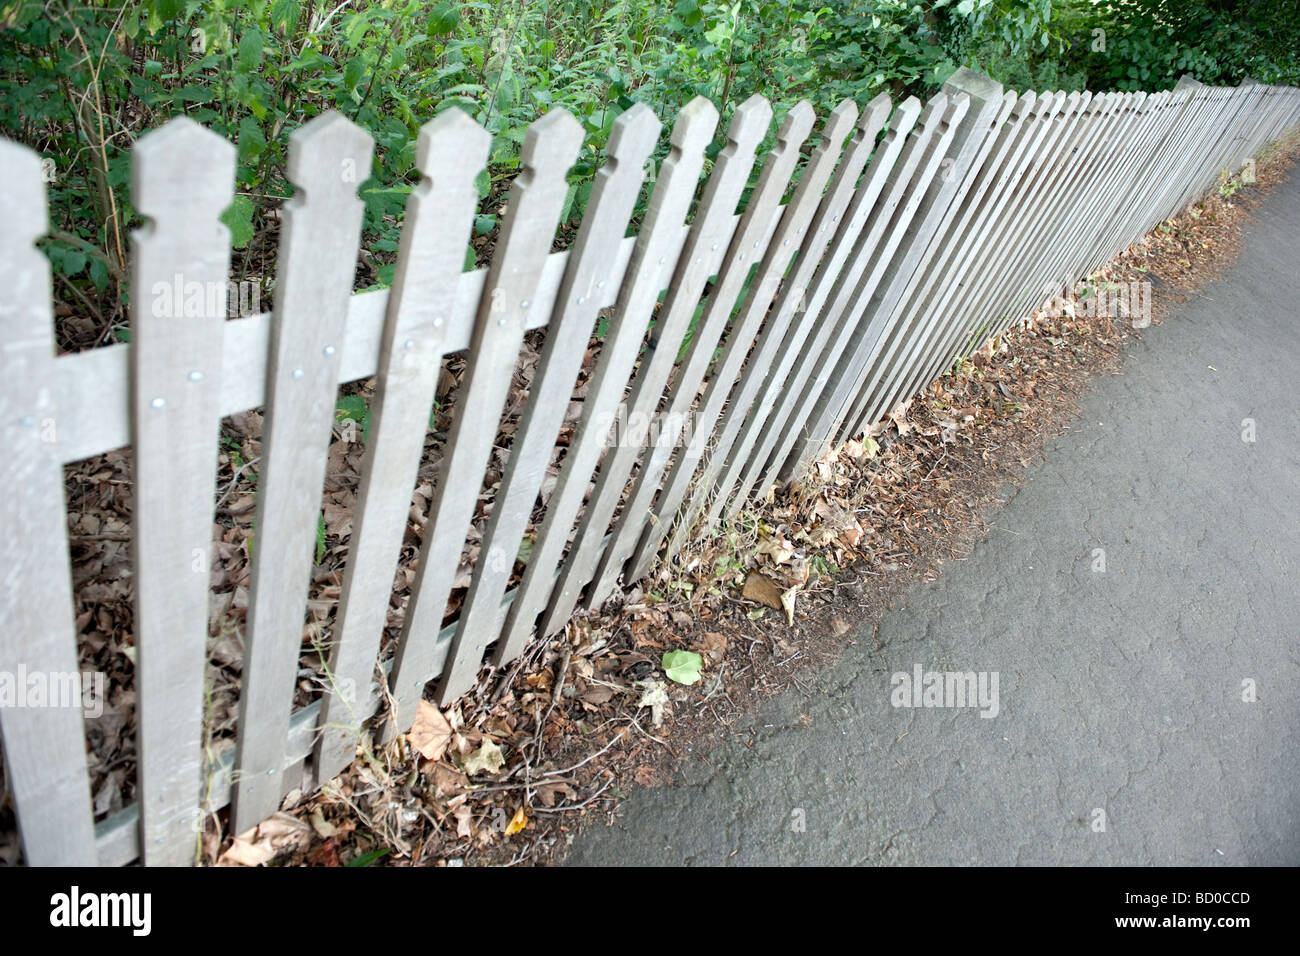 Unpainted picket fence with carved pales shot at an angle Stock Photo